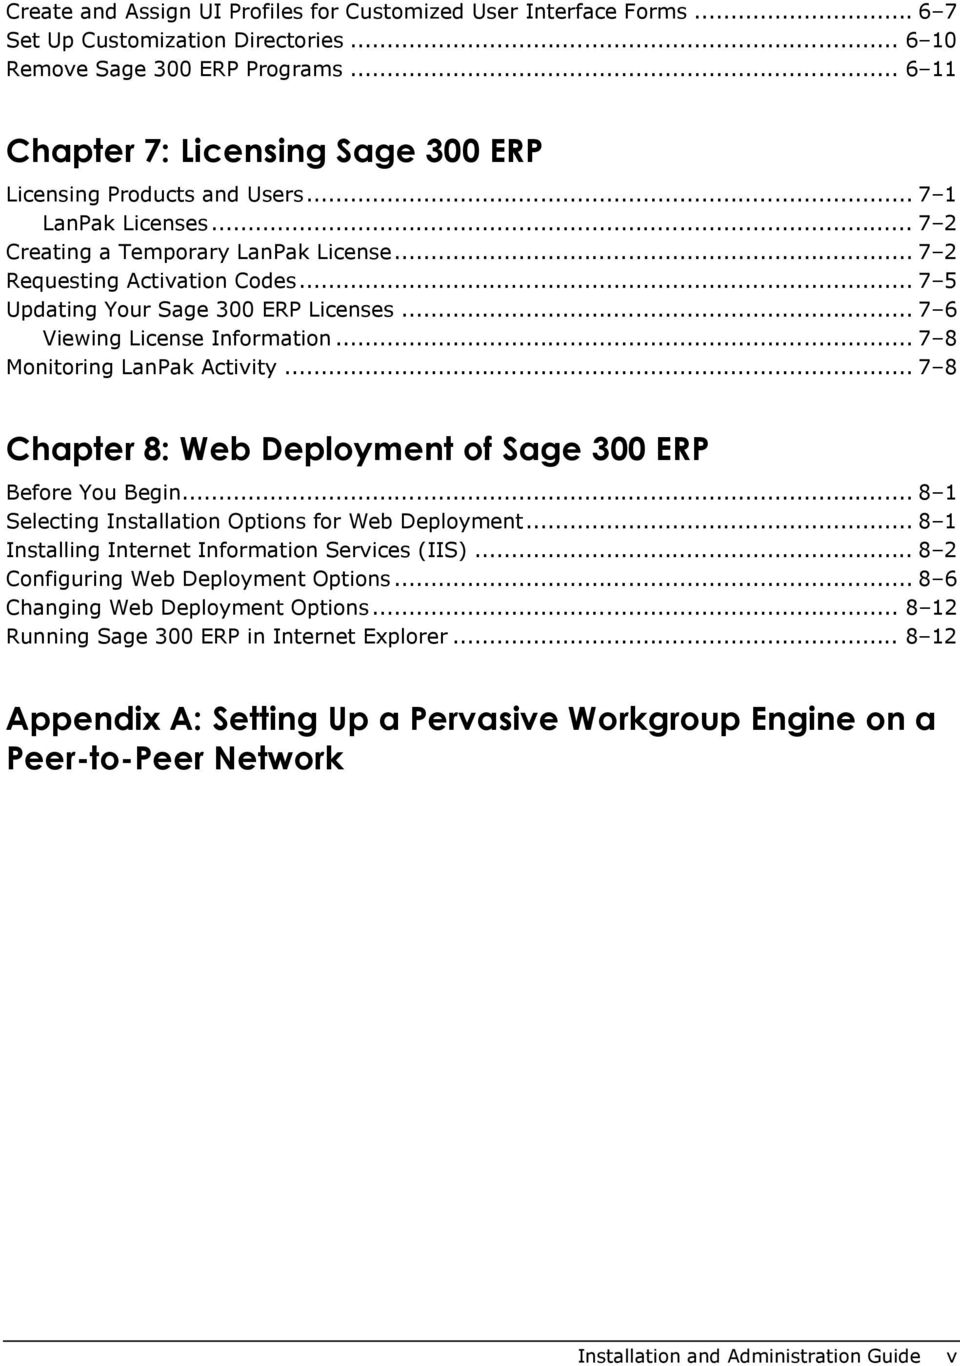 .. 7 5 Updating Your Sage 300 ERP Licenses... 7 6 Viewing License Information... 7 8 Monitoring LanPak Activity... 7 8 Chapter 8: Web Deployment of Sage 300 ERP Before You Begin.